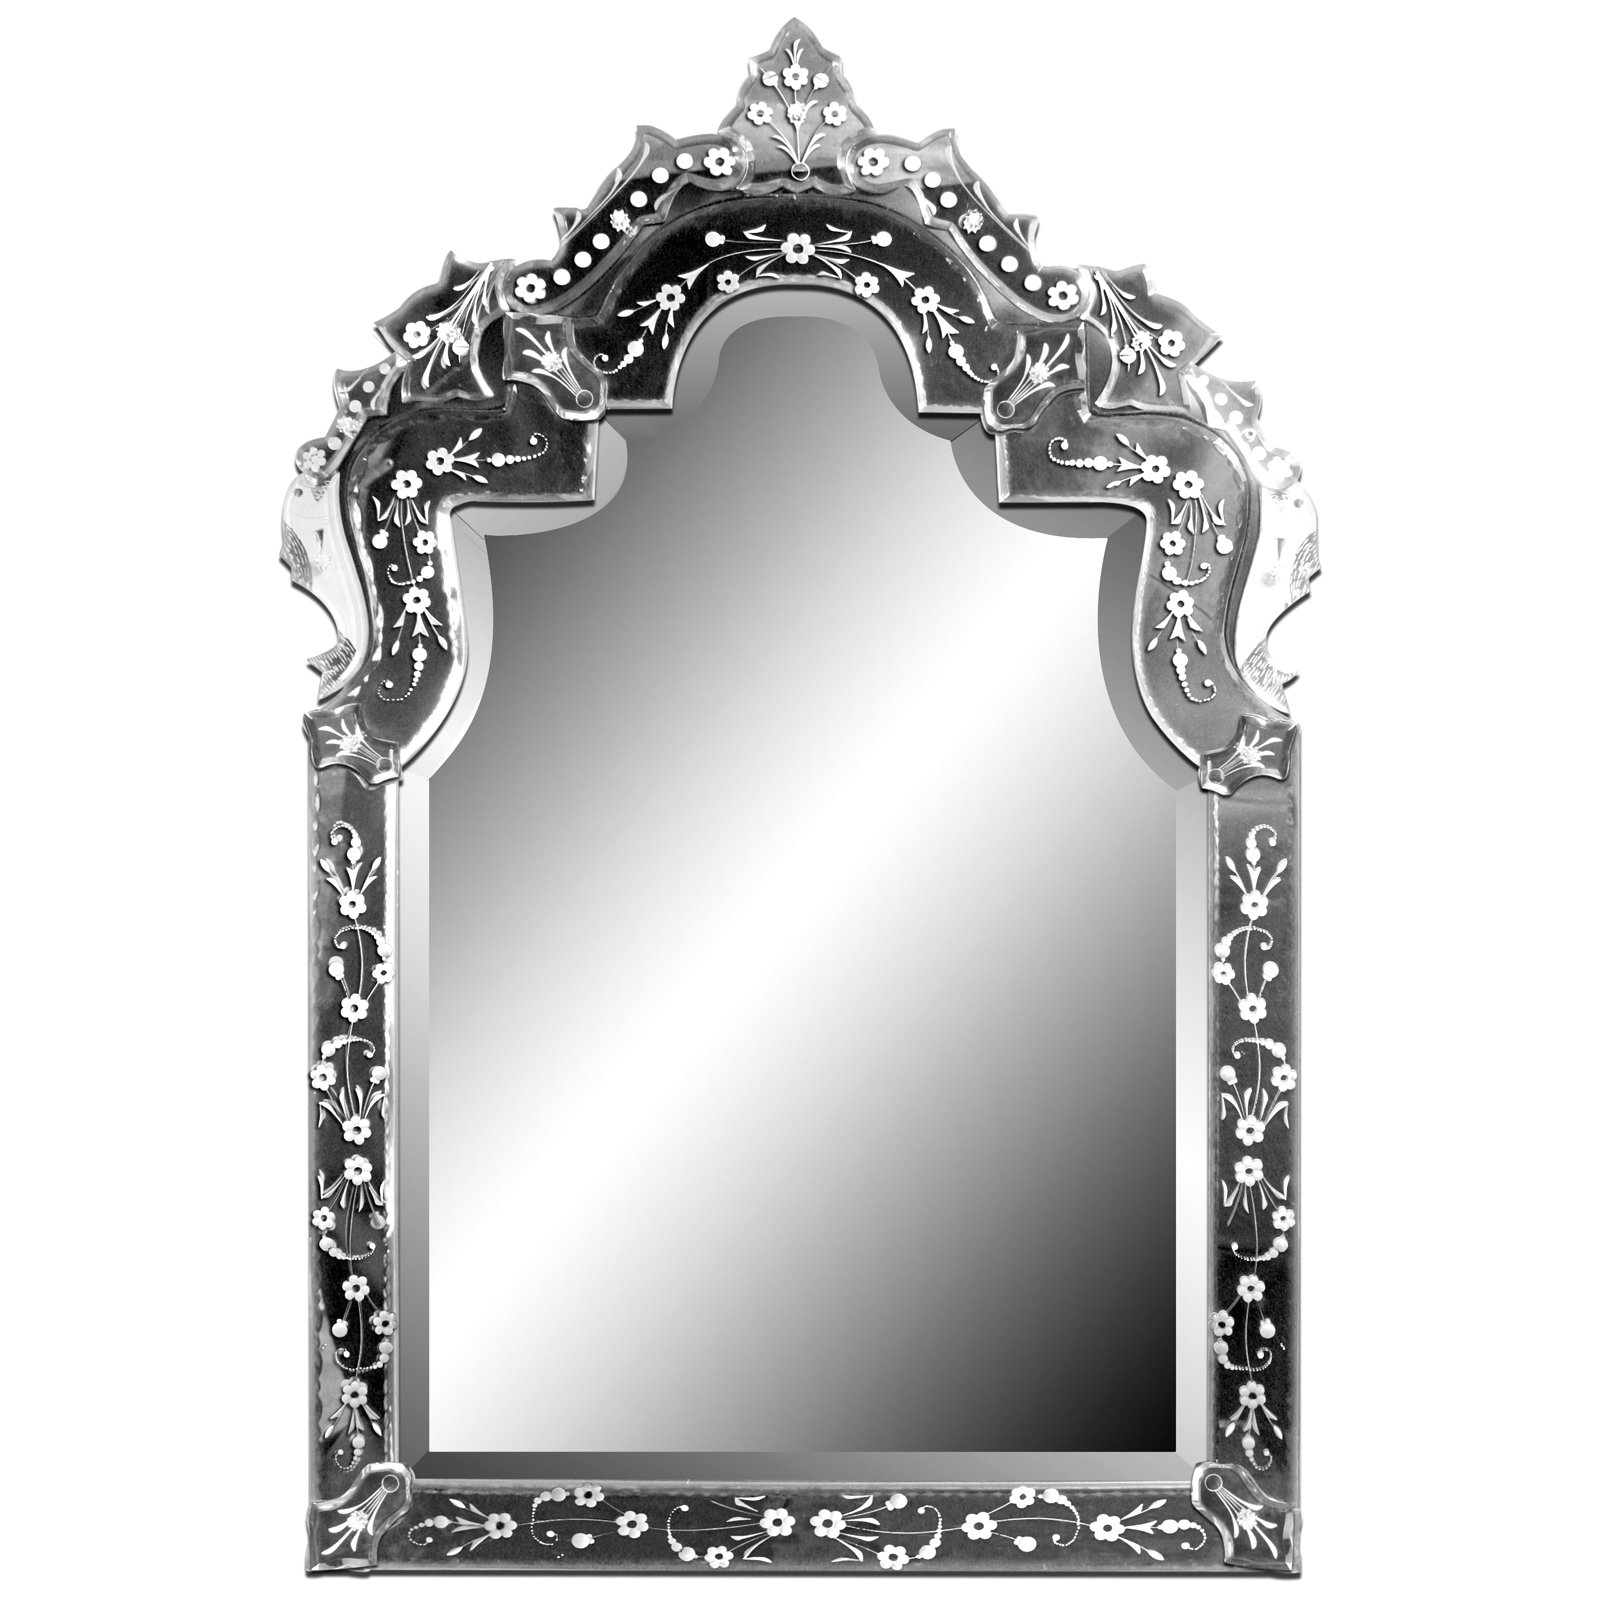 Hot topic tuesday mirror mirror on the wall for Miroir on the wall